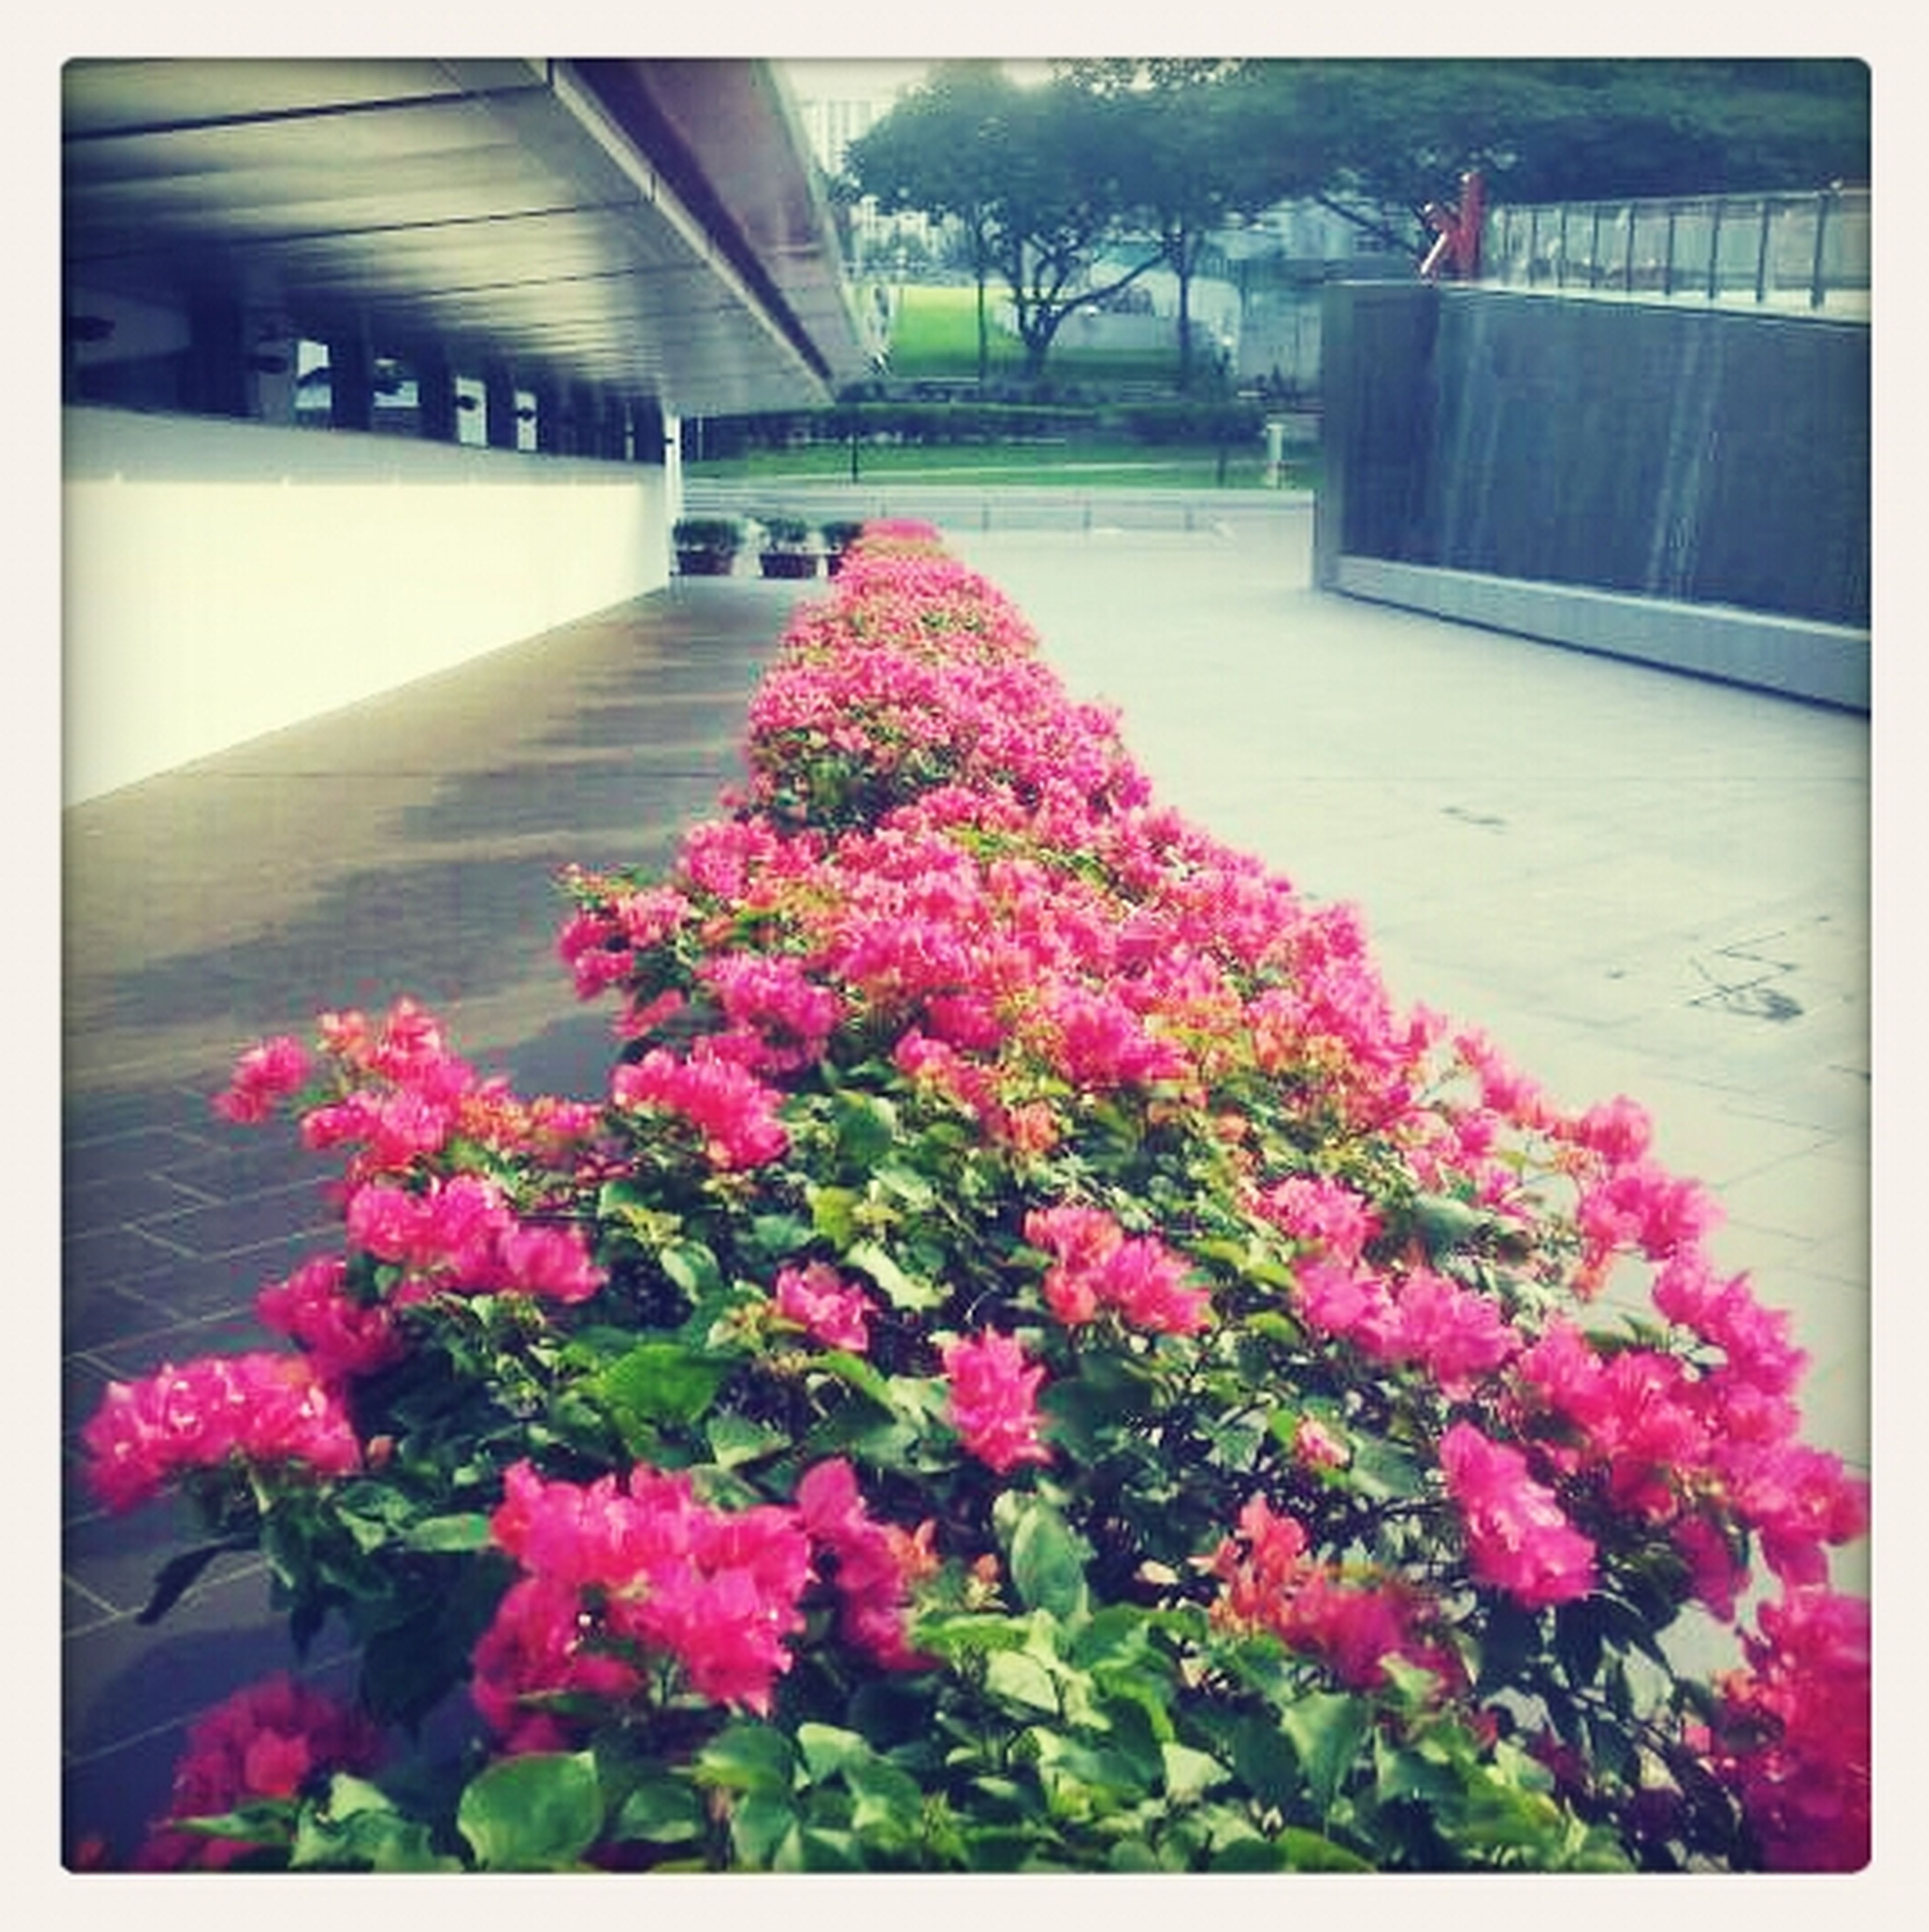 flower, freshness, fragility, pink color, building exterior, petal, growth, built structure, blooming, architecture, plant, beauty in nature, transfer print, in bloom, nature, blossom, house, flower head, pink, auto post production filter